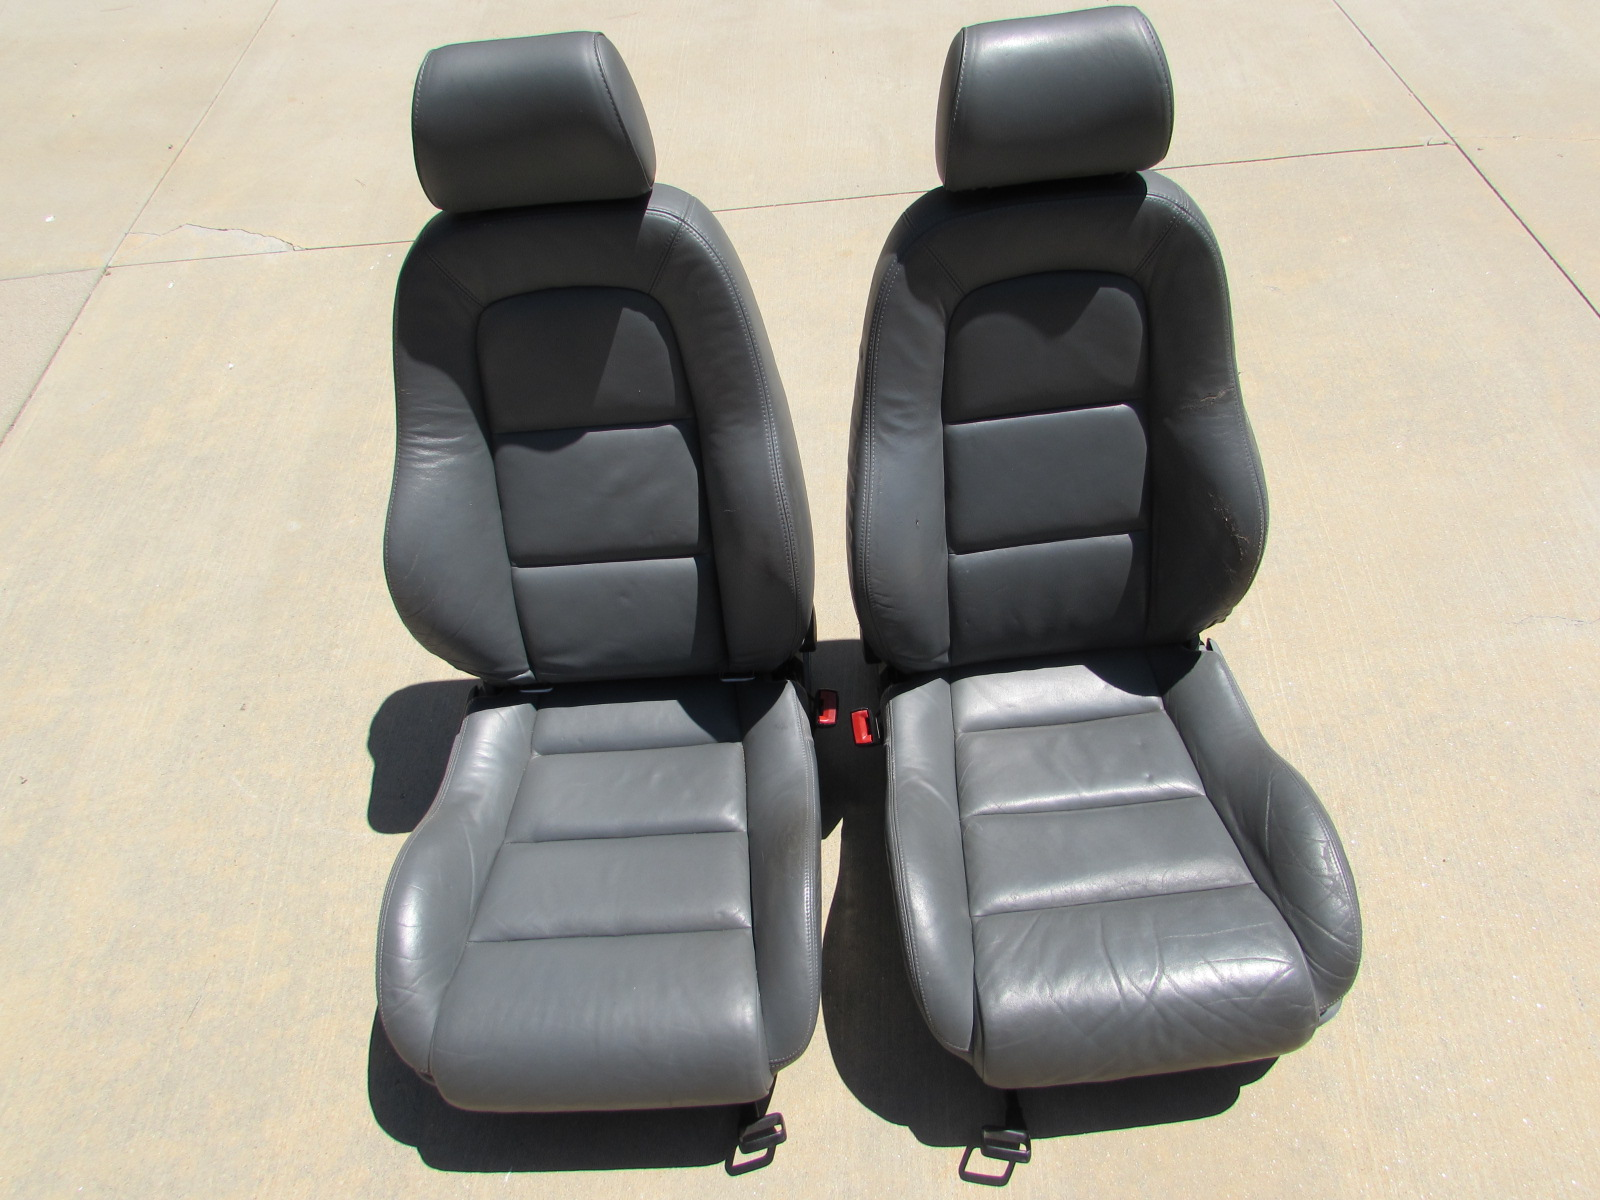 Audi TT MK1 8N Sports Front Seats w/ Napa Fine Leather and Suede ...